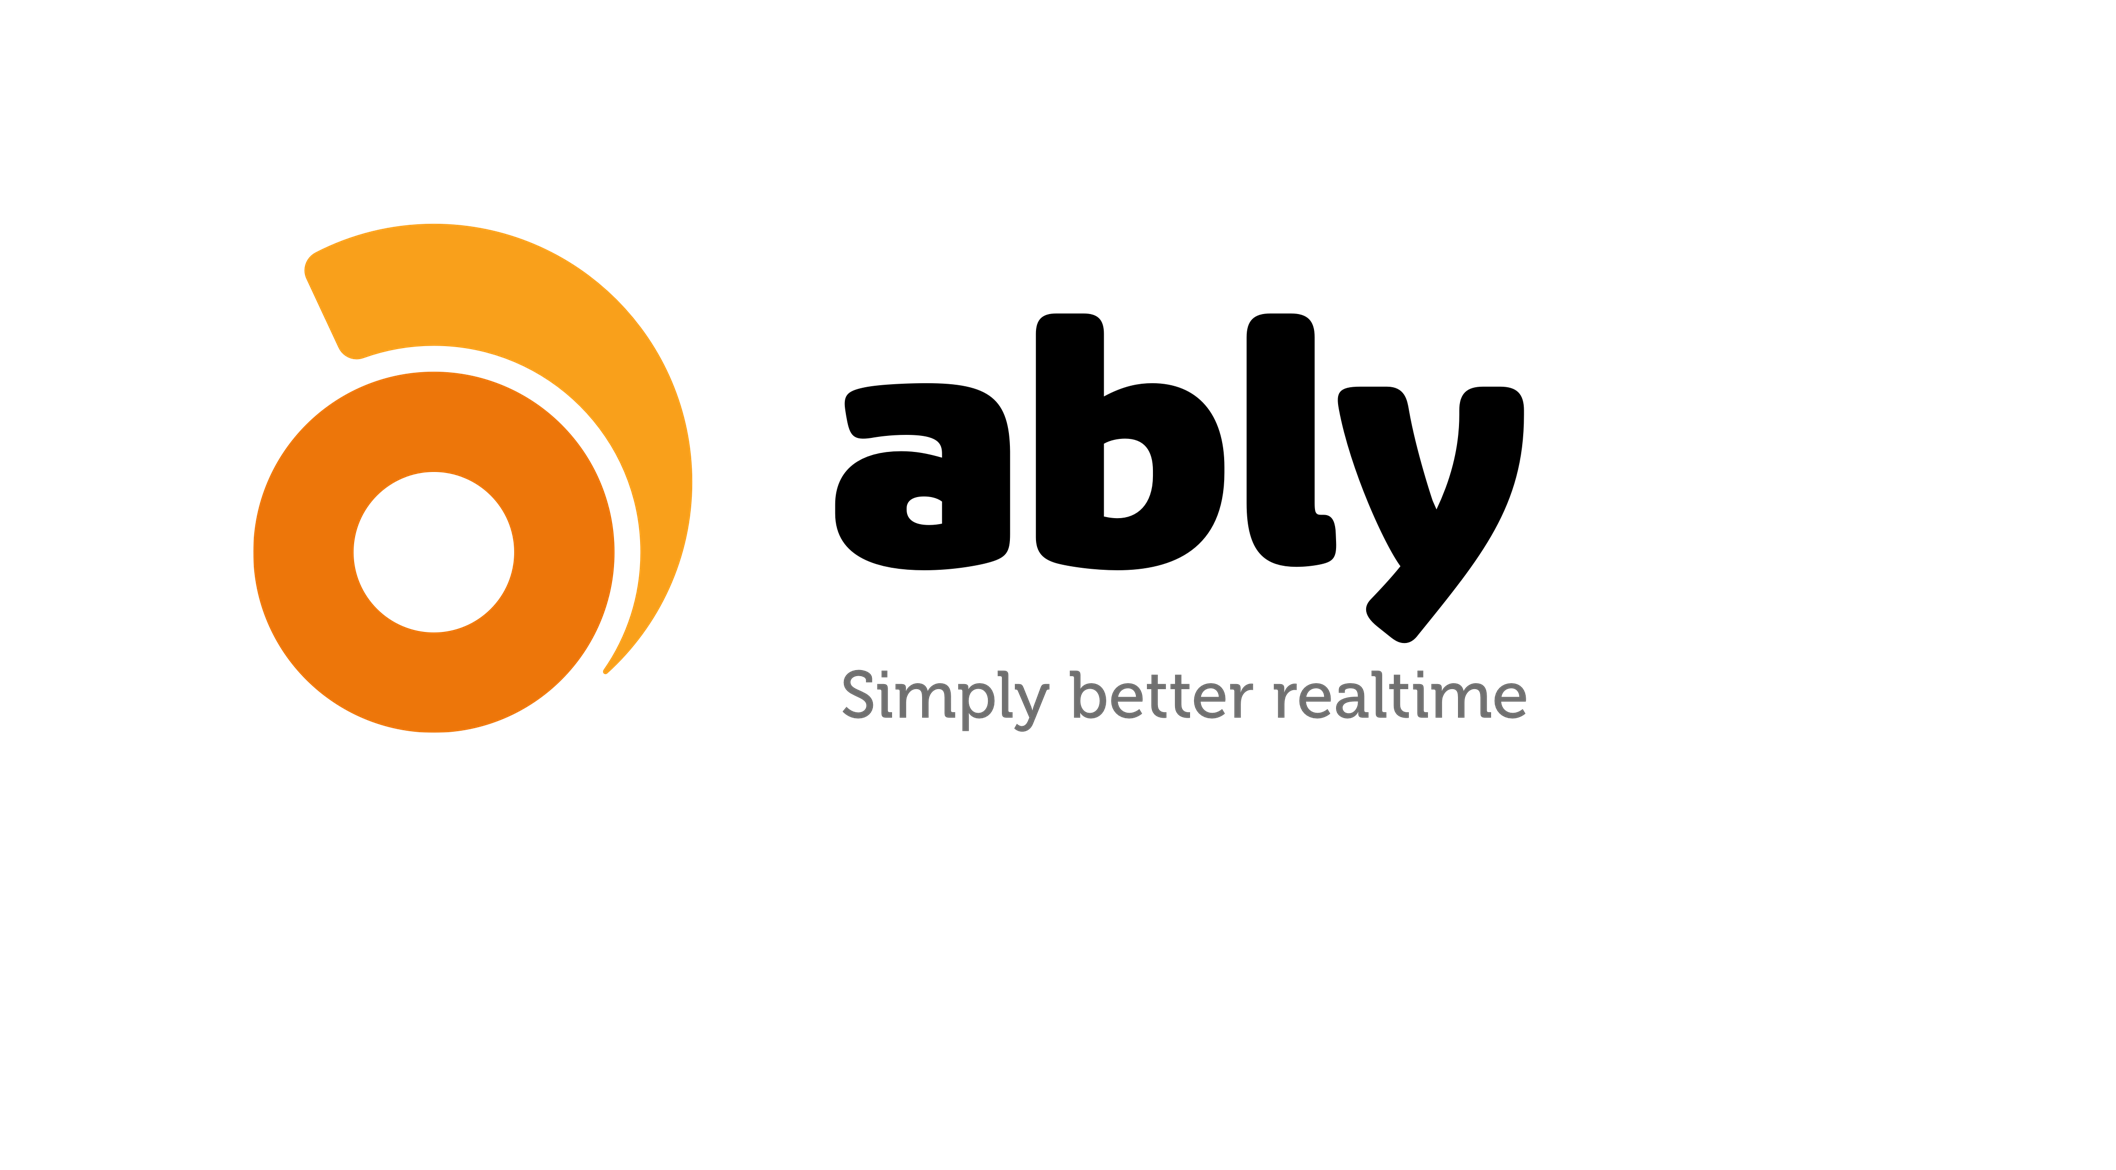 Ably launches: Better realtime messaging